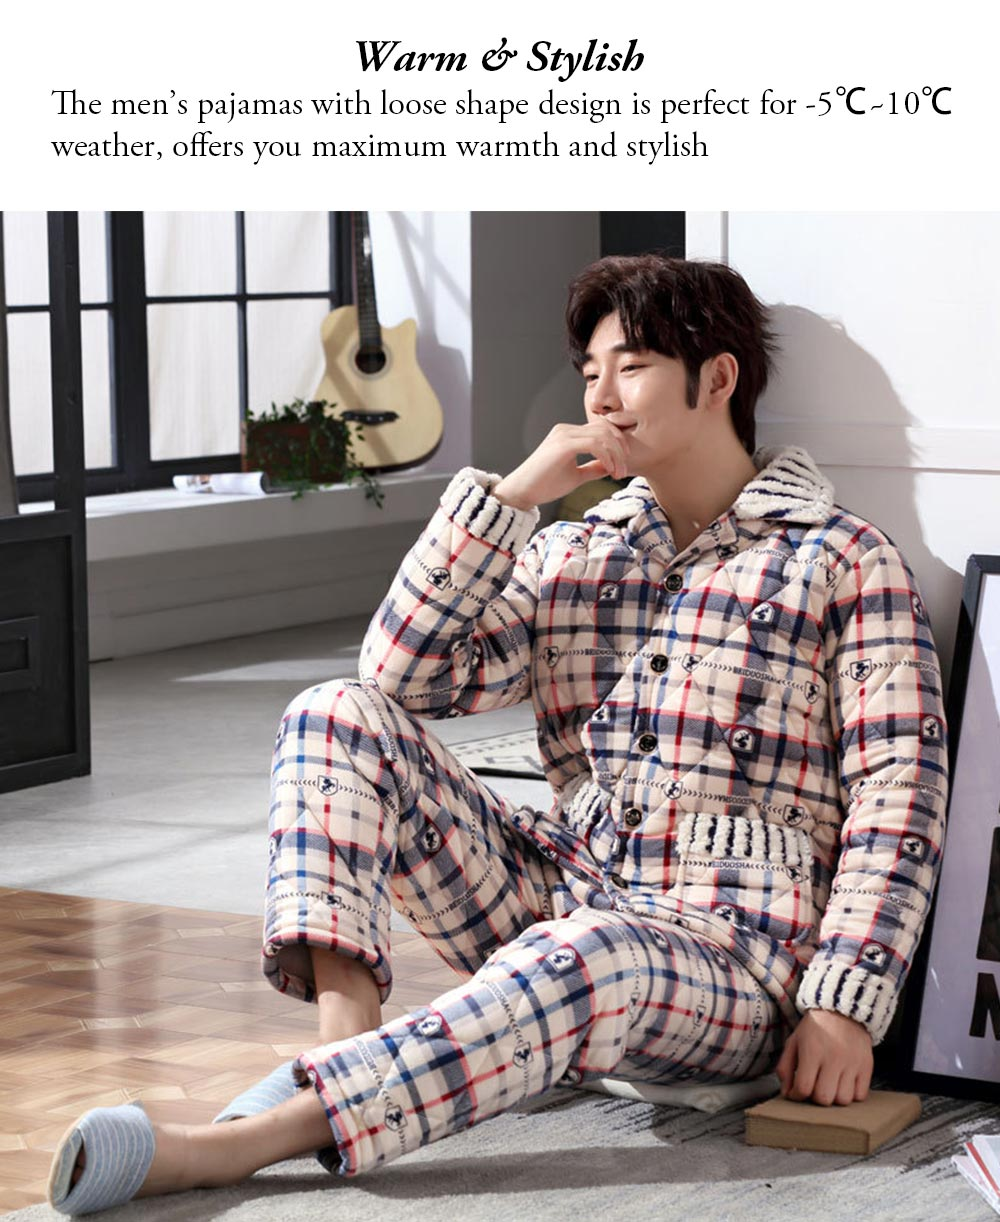 Crystal Velvet Nightshirt for Men, Ultra Warm V-neck Nightshirt with 5 Buttons for Early Spring, Autumn, Winter -5℃~10℃ 7